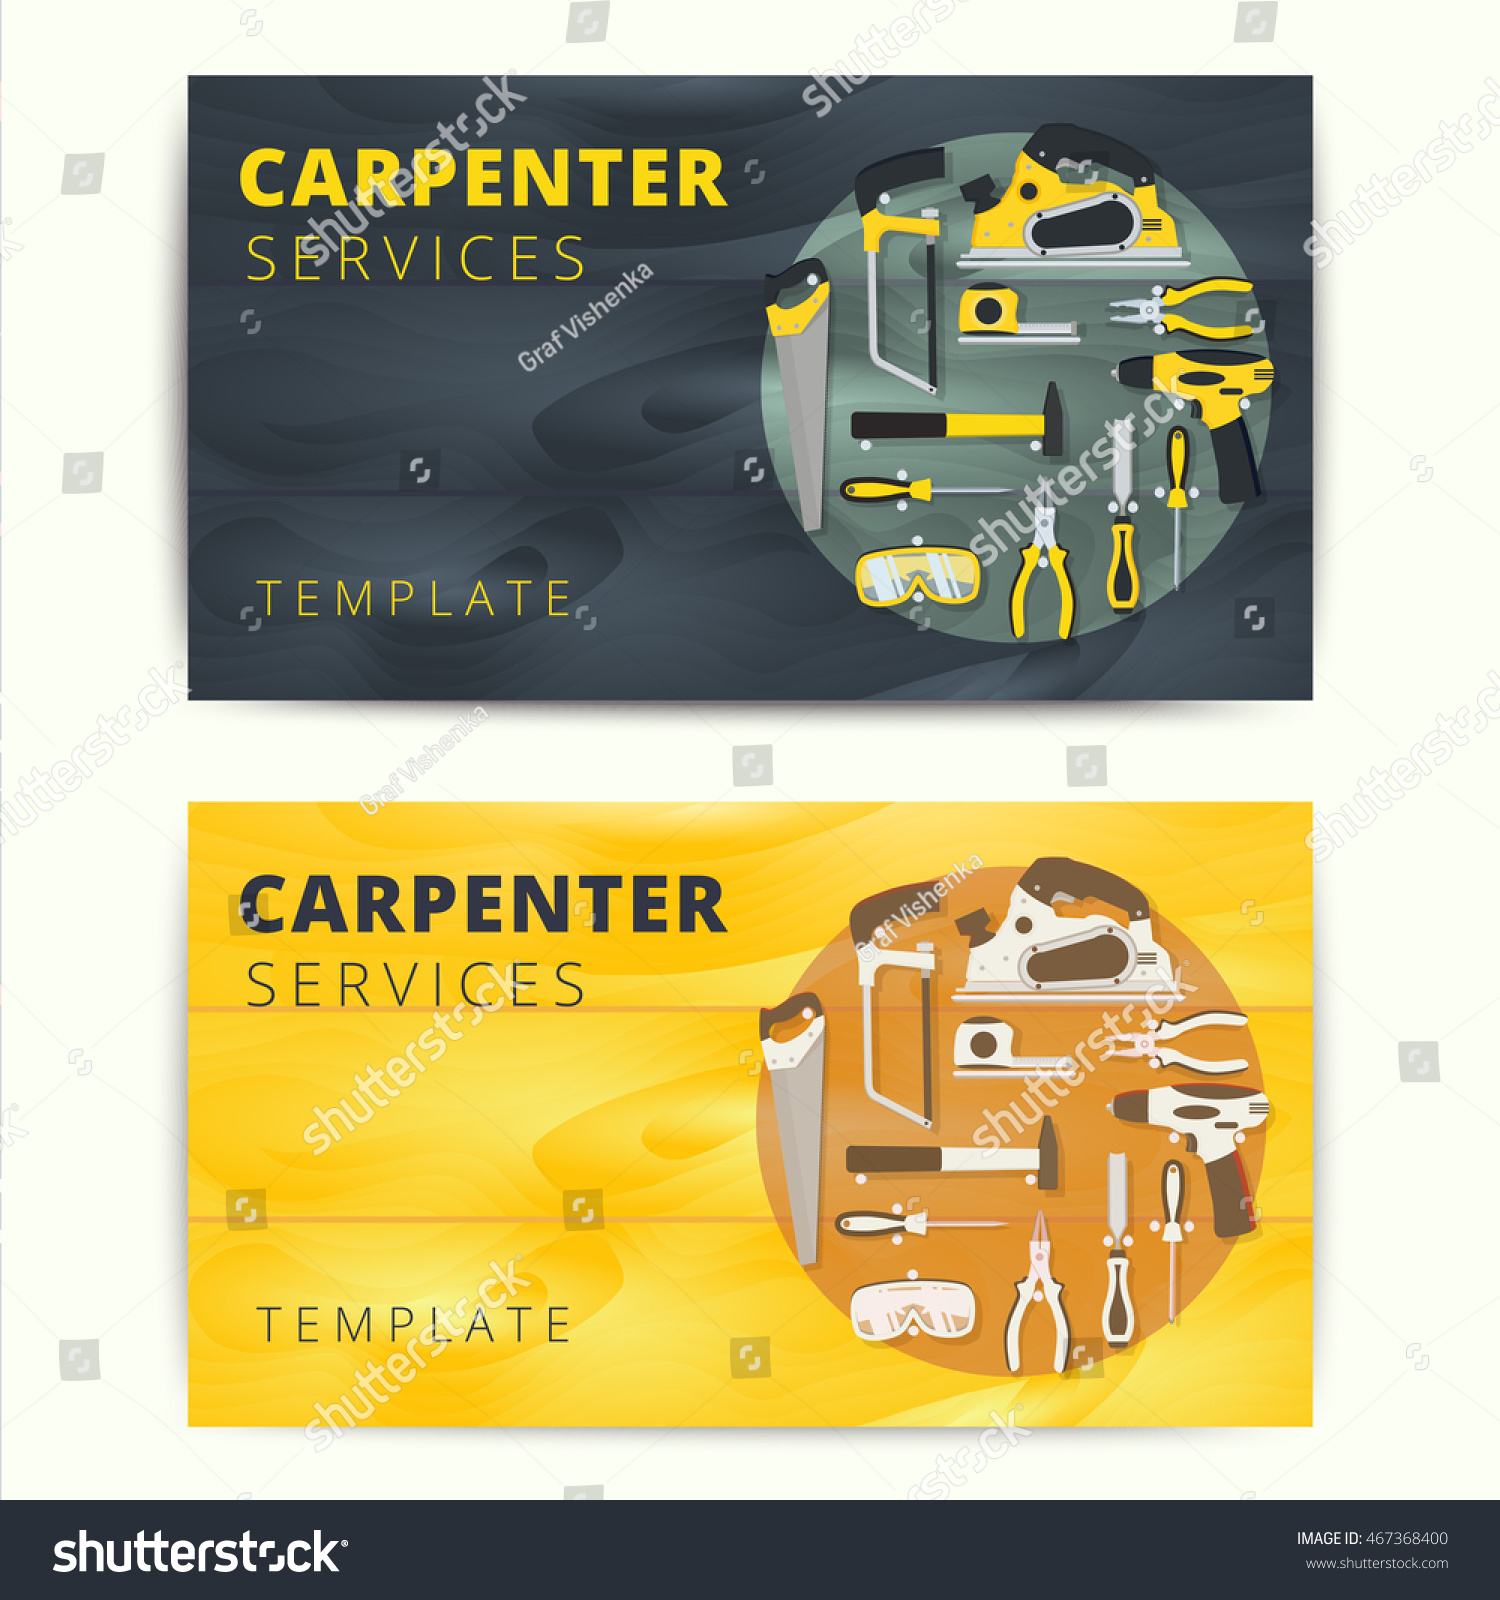 Carpenter business card template mandegarfo carpenter business card template fbccfo Choice Image